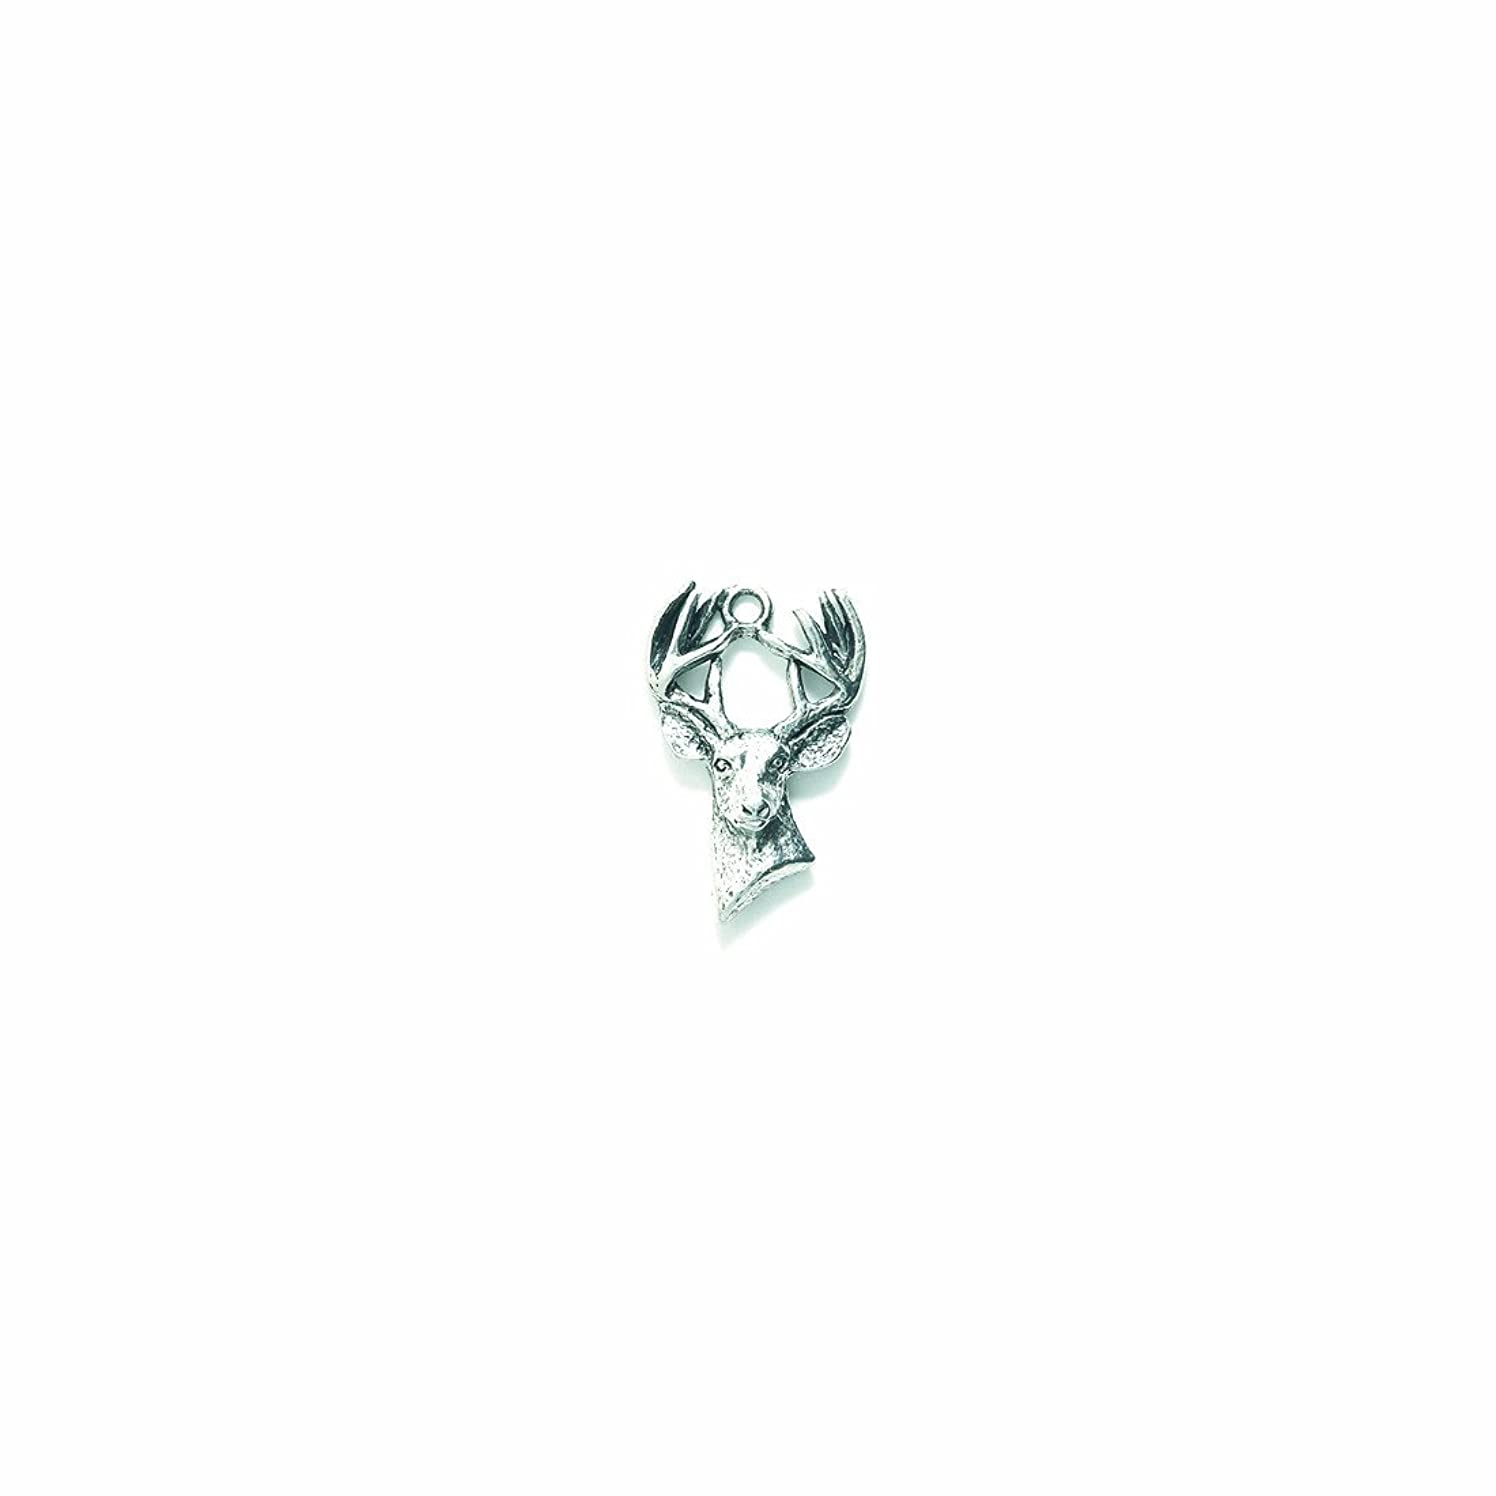 Shipwreck Beads Pewter Buck Deer Head Charm, Silver, 15 by 22mm, 4-Piece